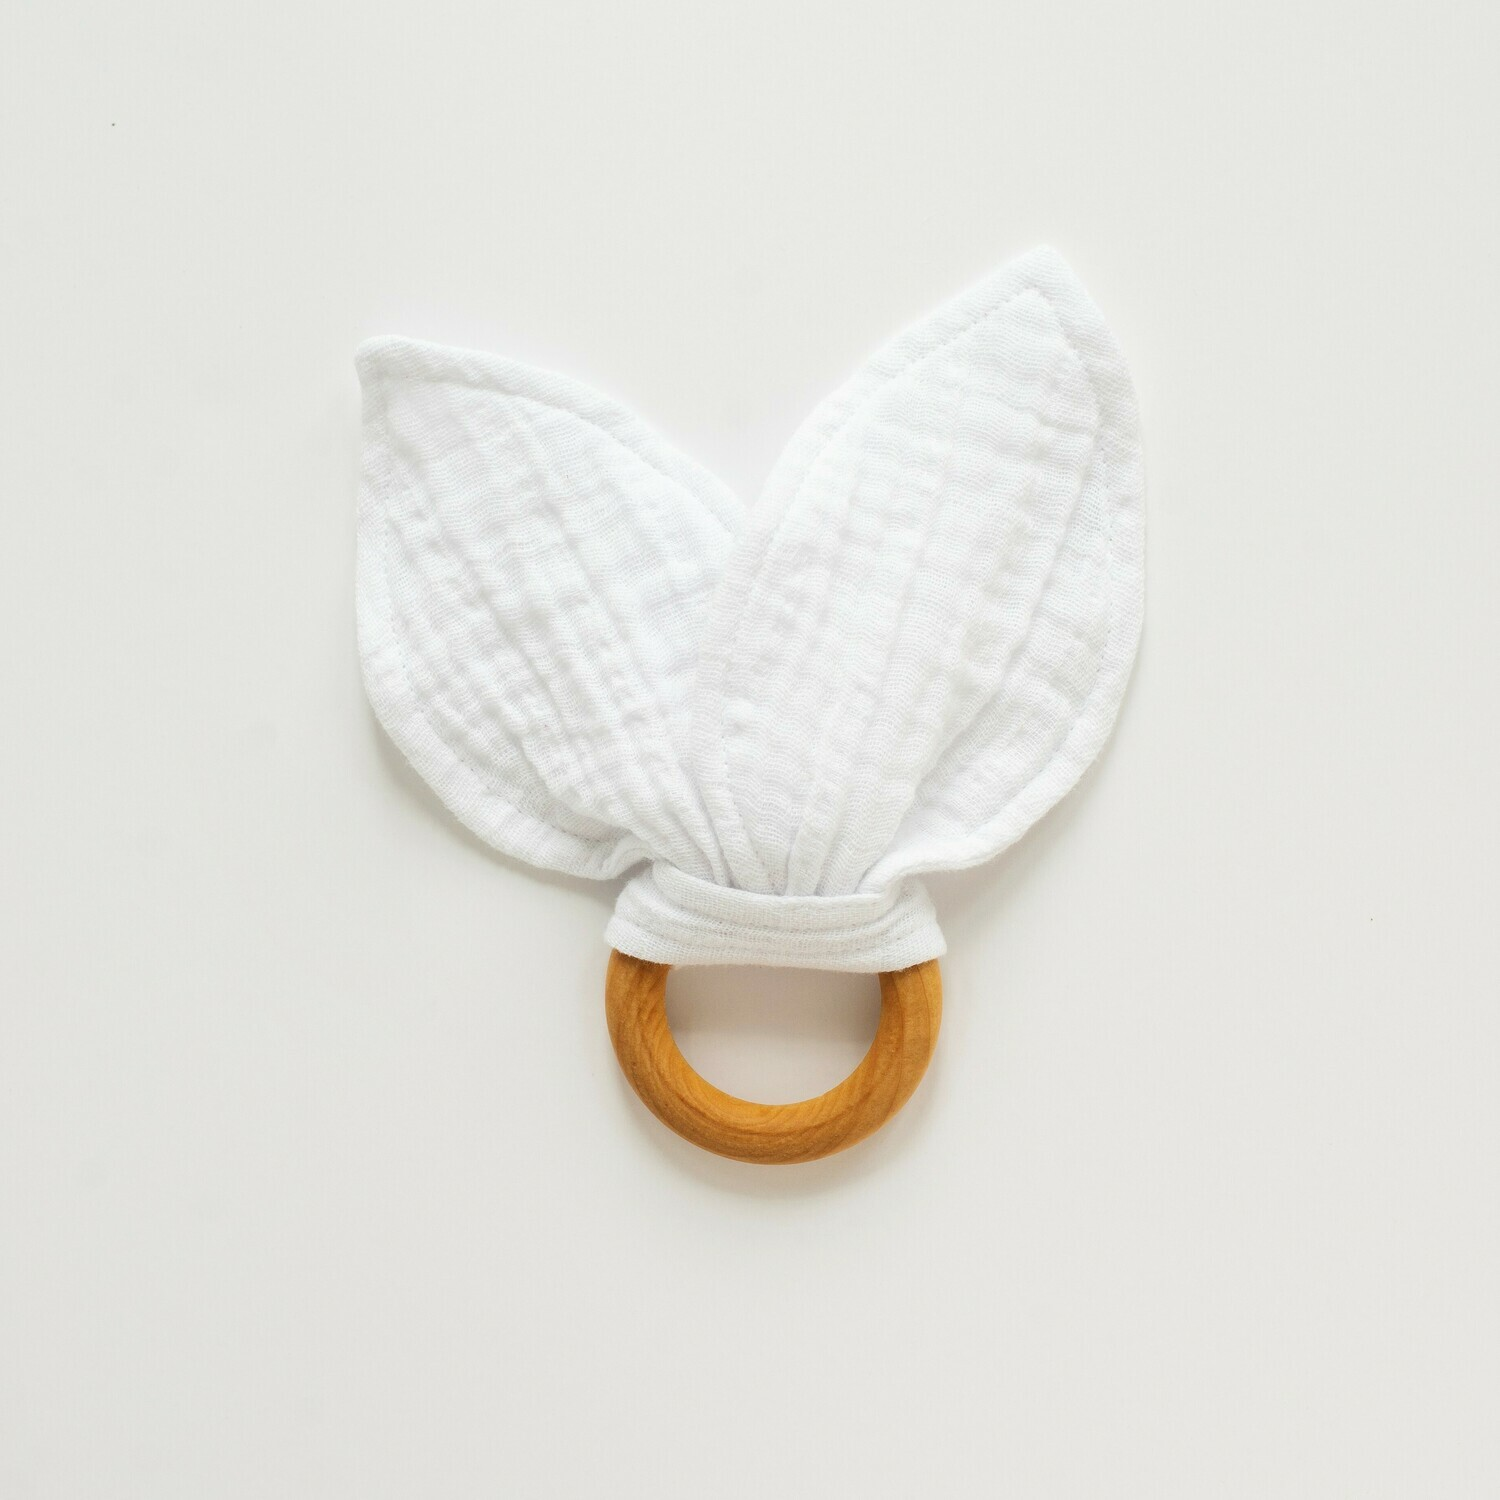 Spring Snow Bunny Teether - White Gauze